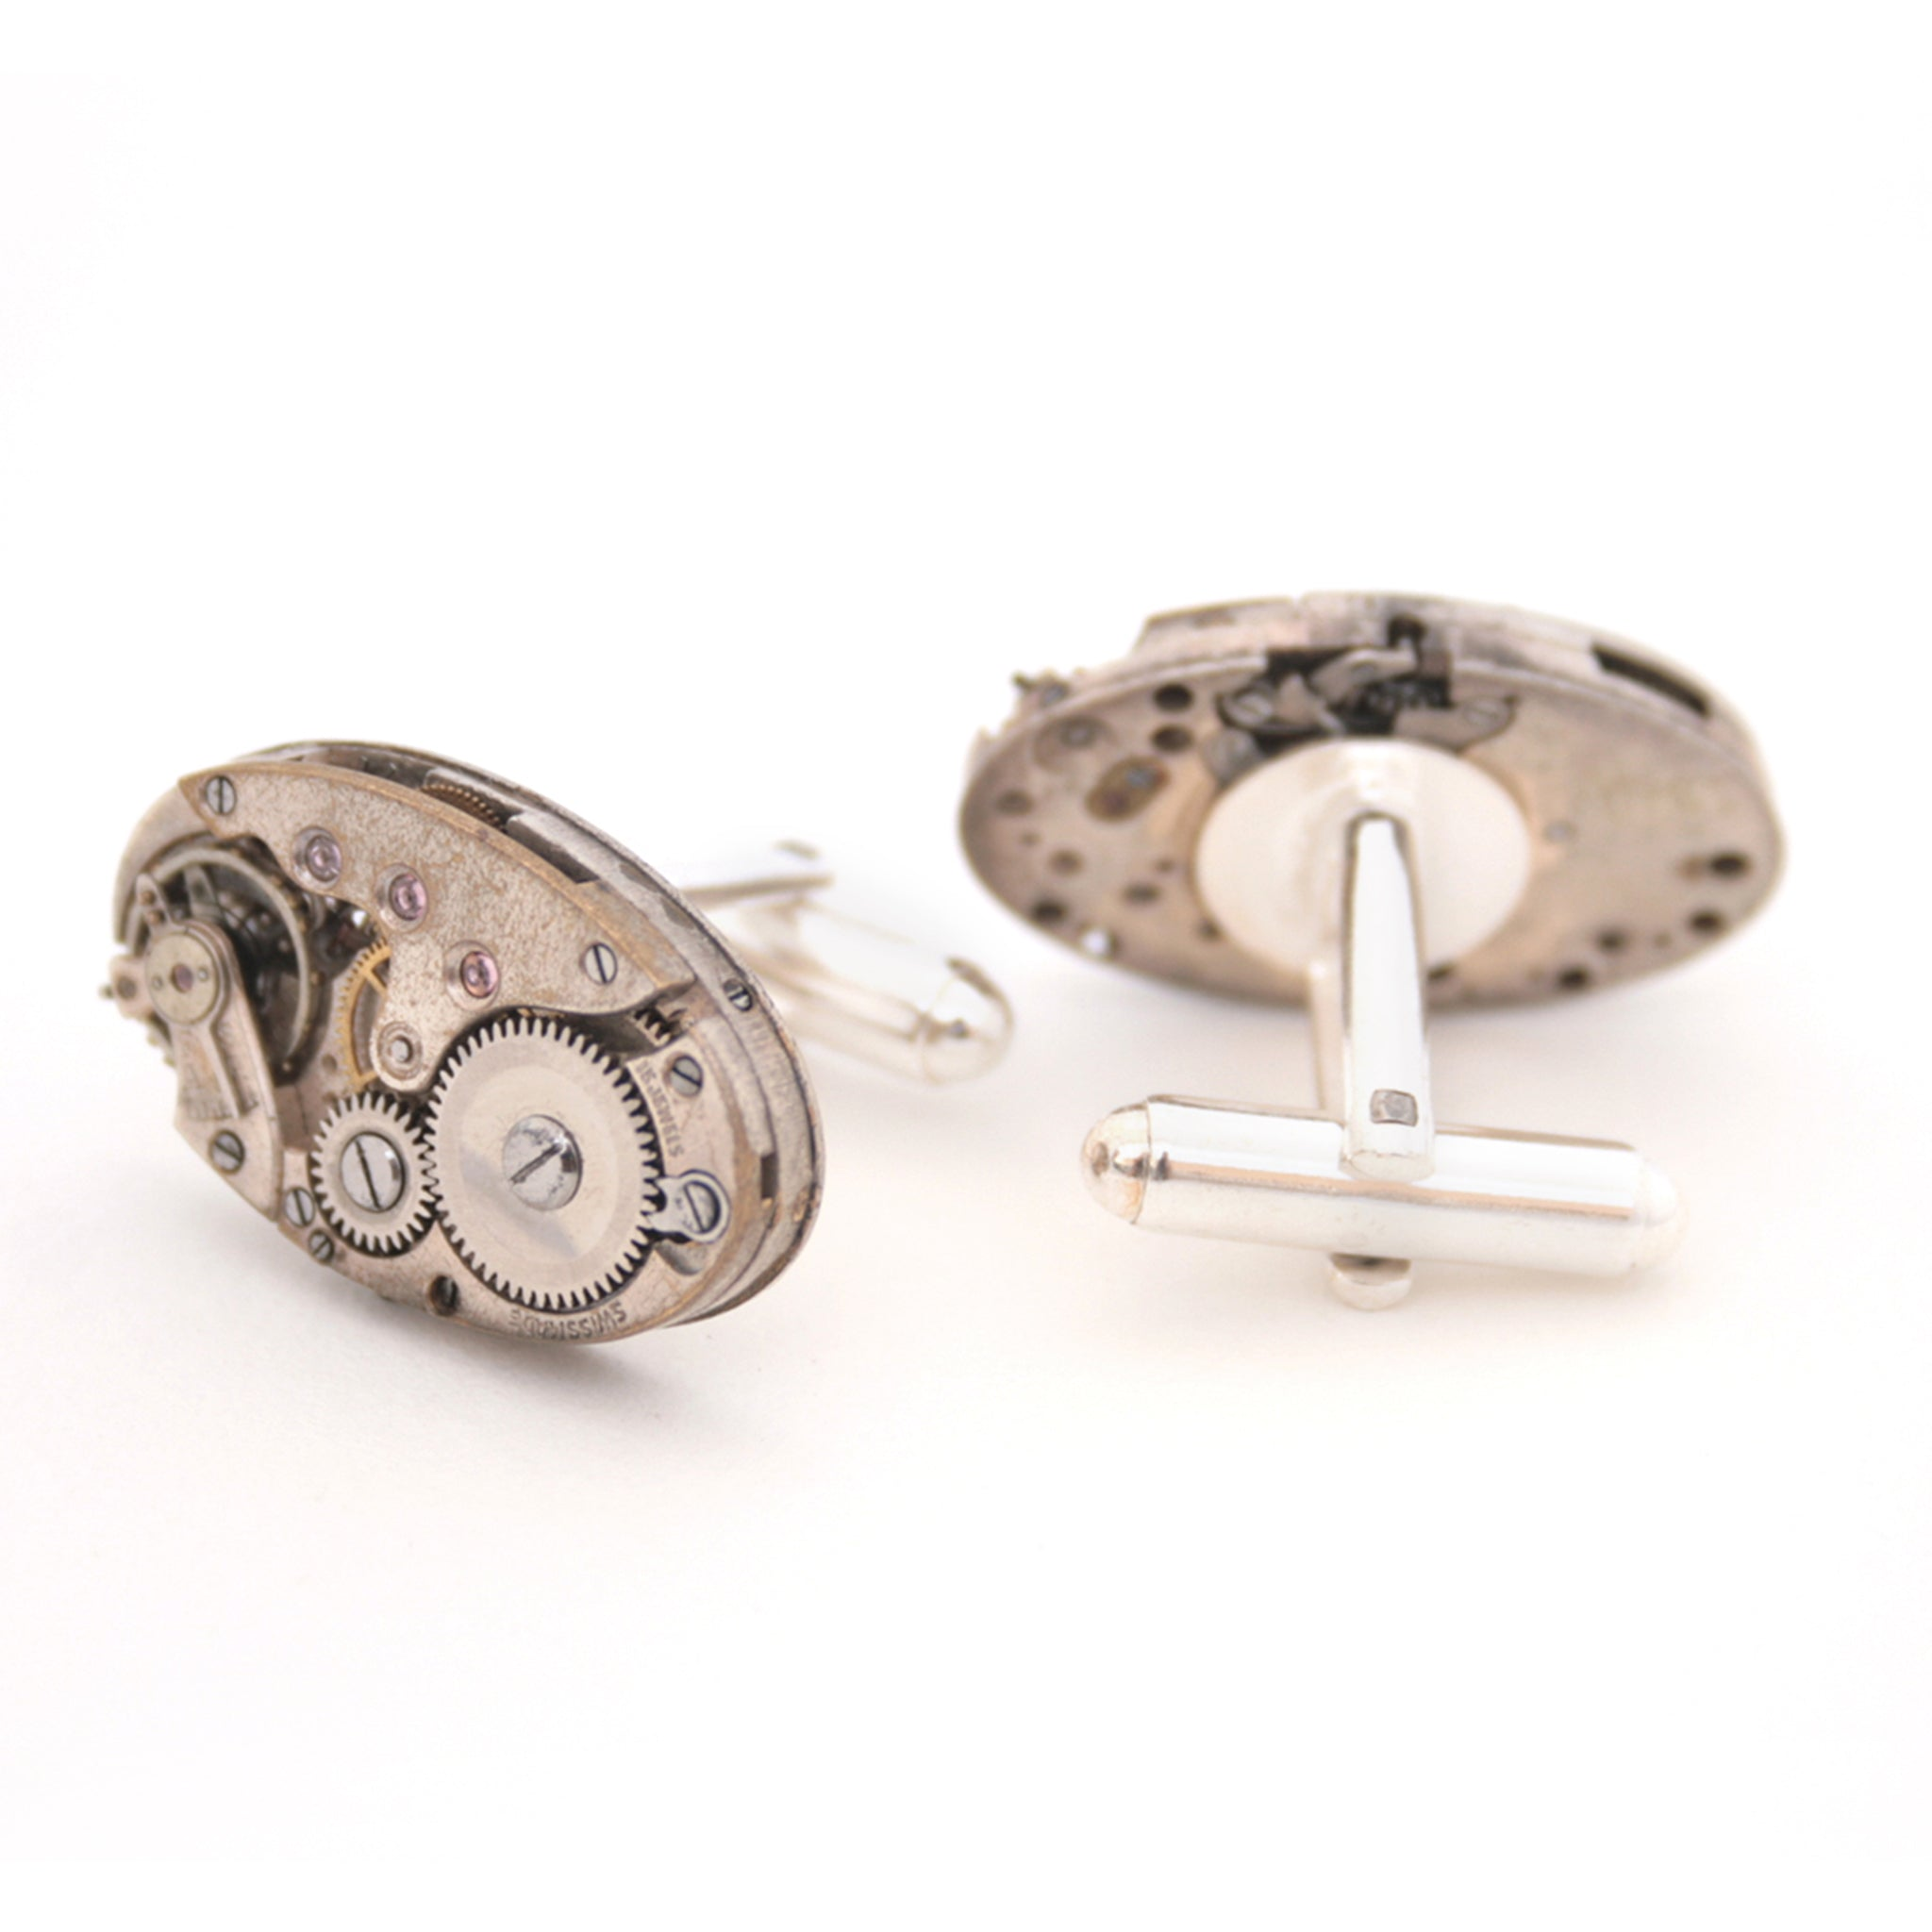 Wedding Cufflinks in Steampunk Style